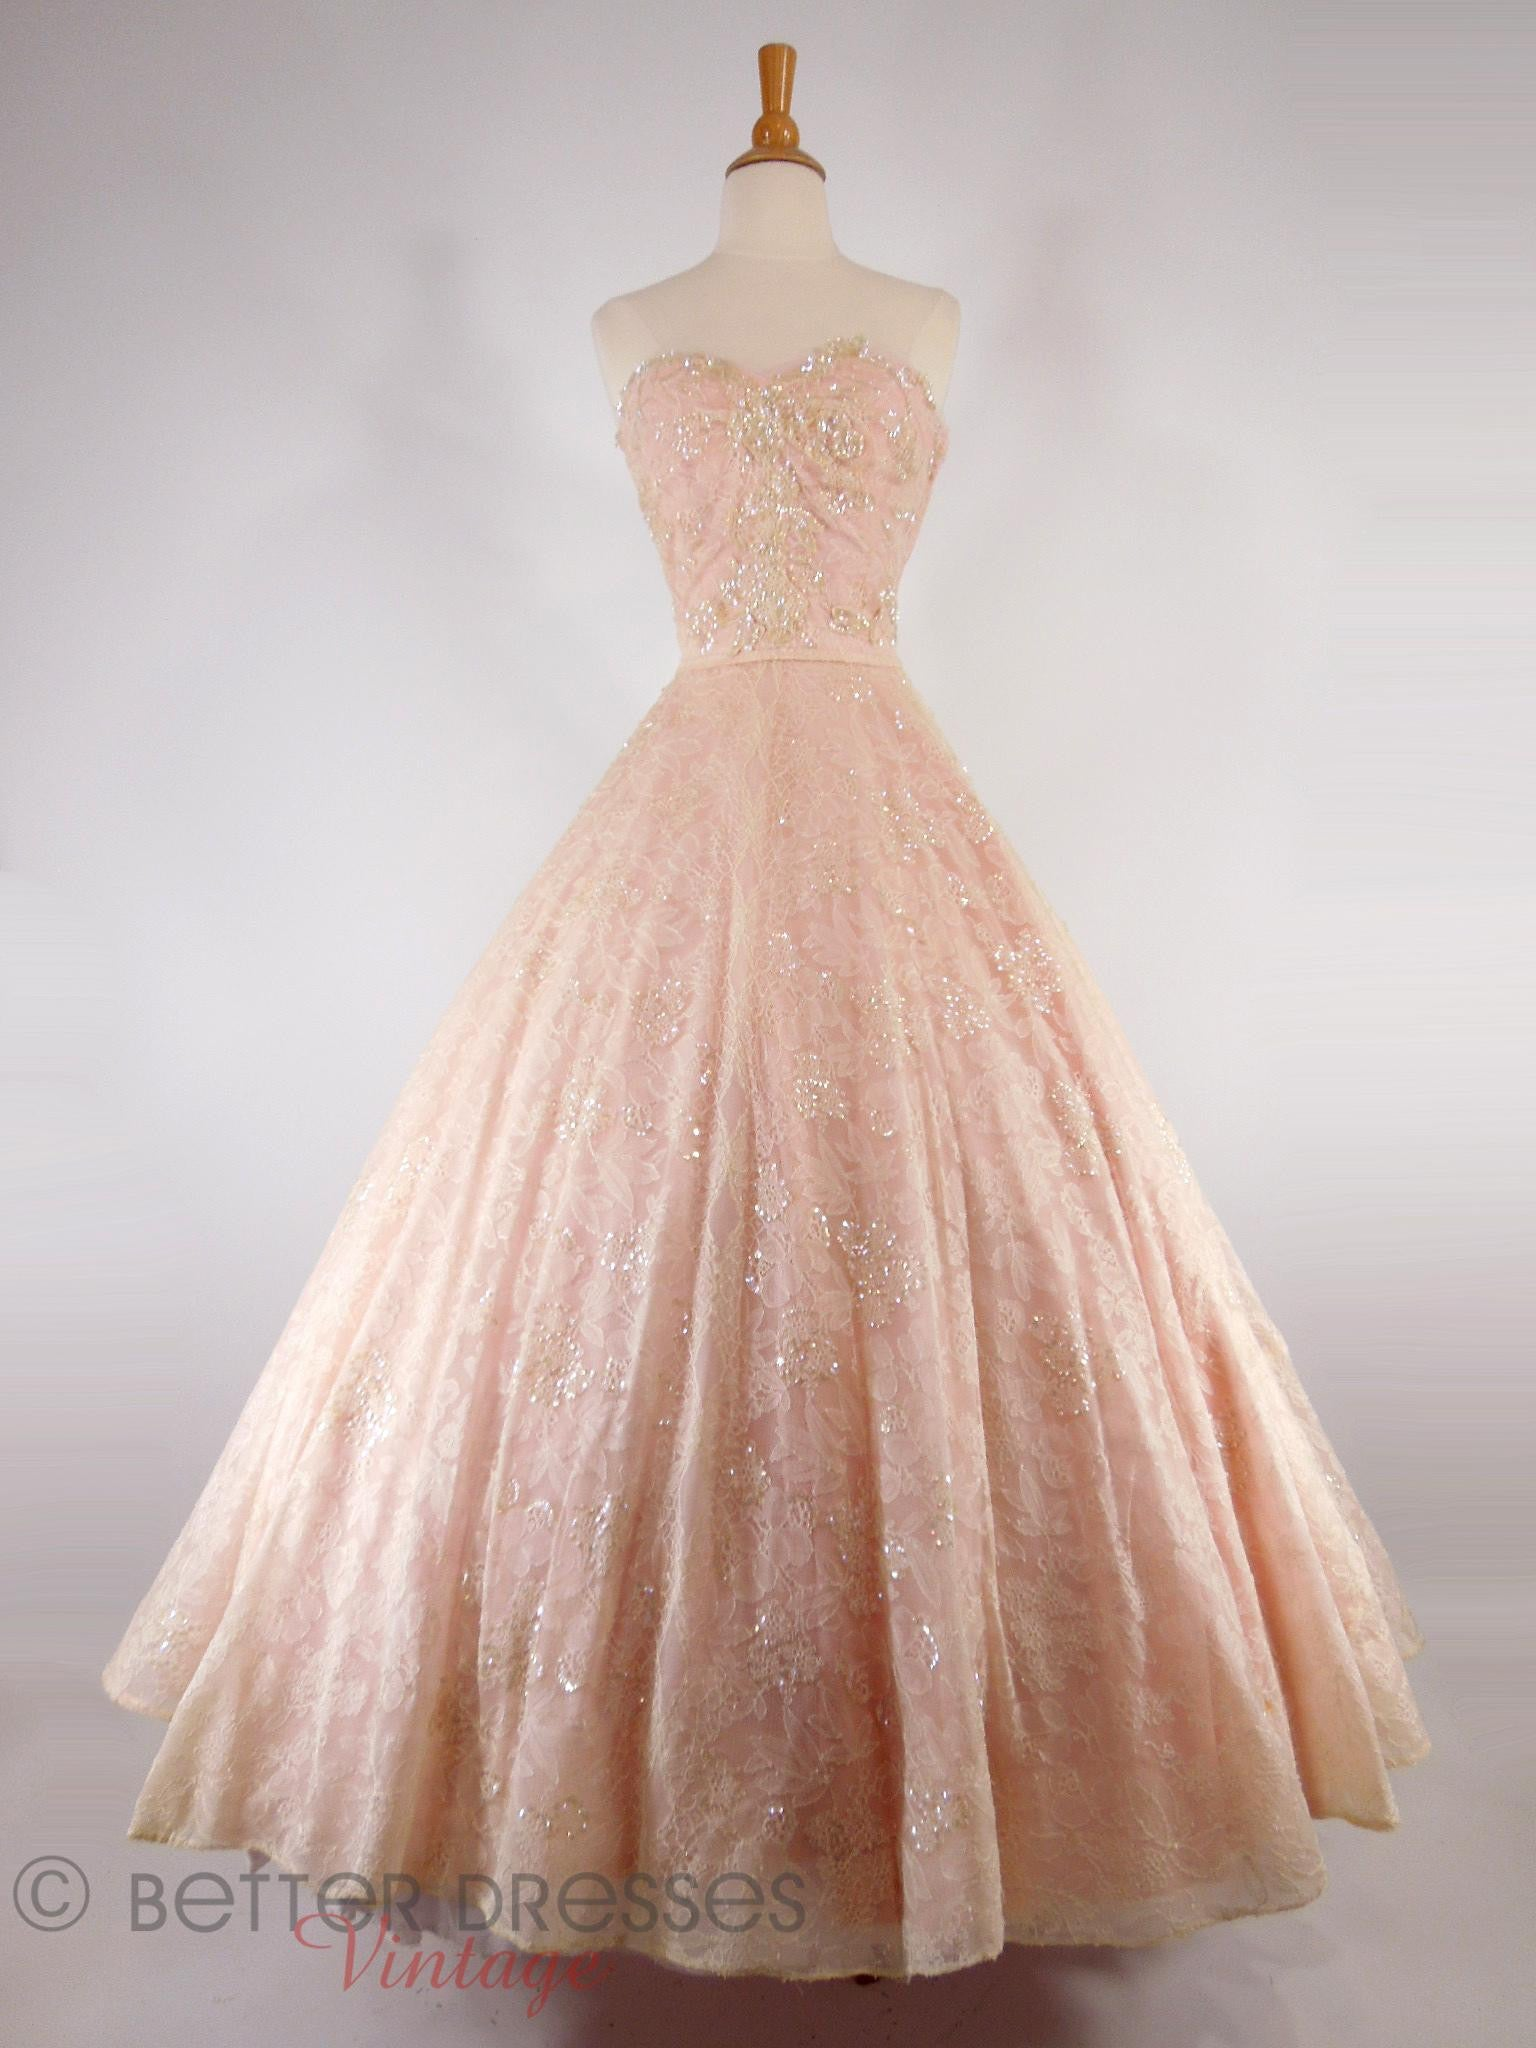 2852b55b8c67 Vintage 1950s Ball Gowns